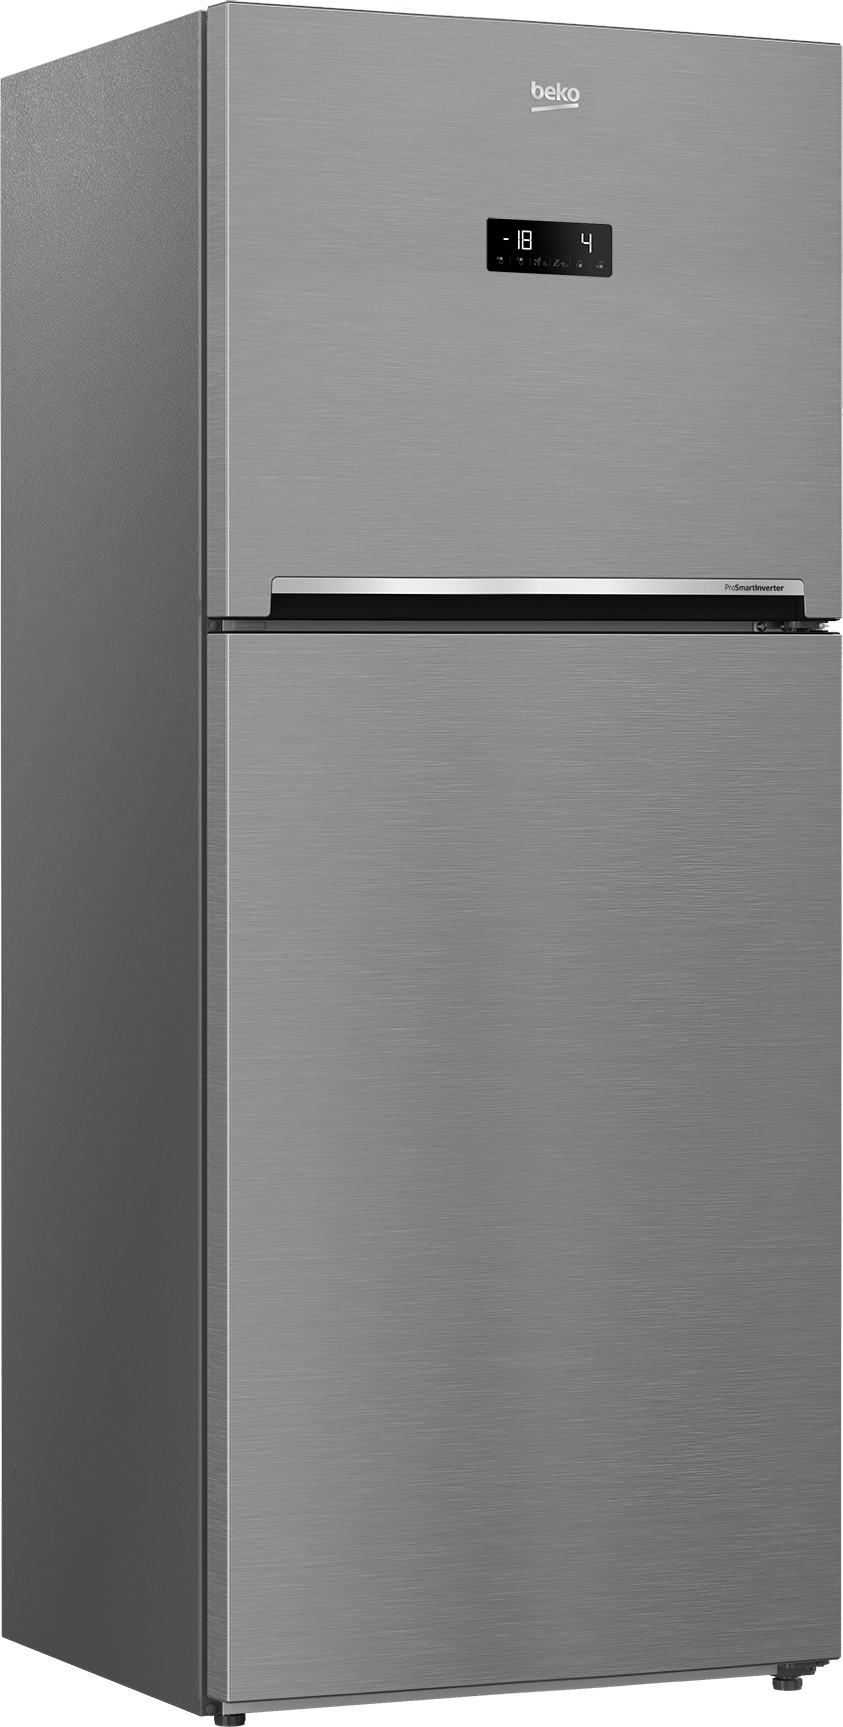 Fridge Freezer (Freezer Top, 70 cm) RDNT440E50VZP